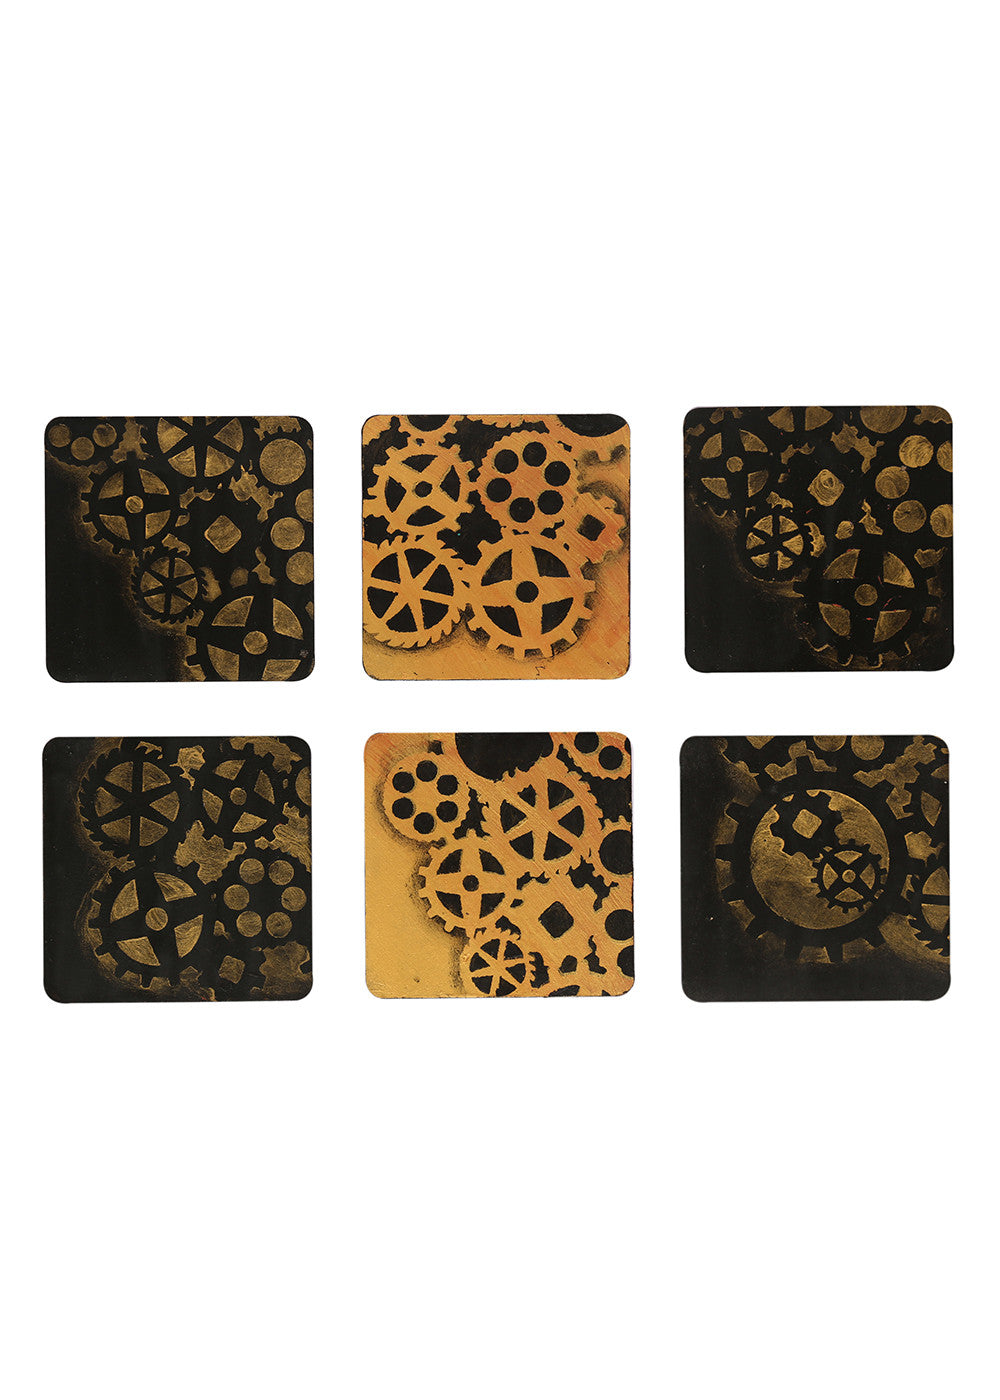 Hand-painted Rustic Steampunk Coaster Set - RANGRAGE